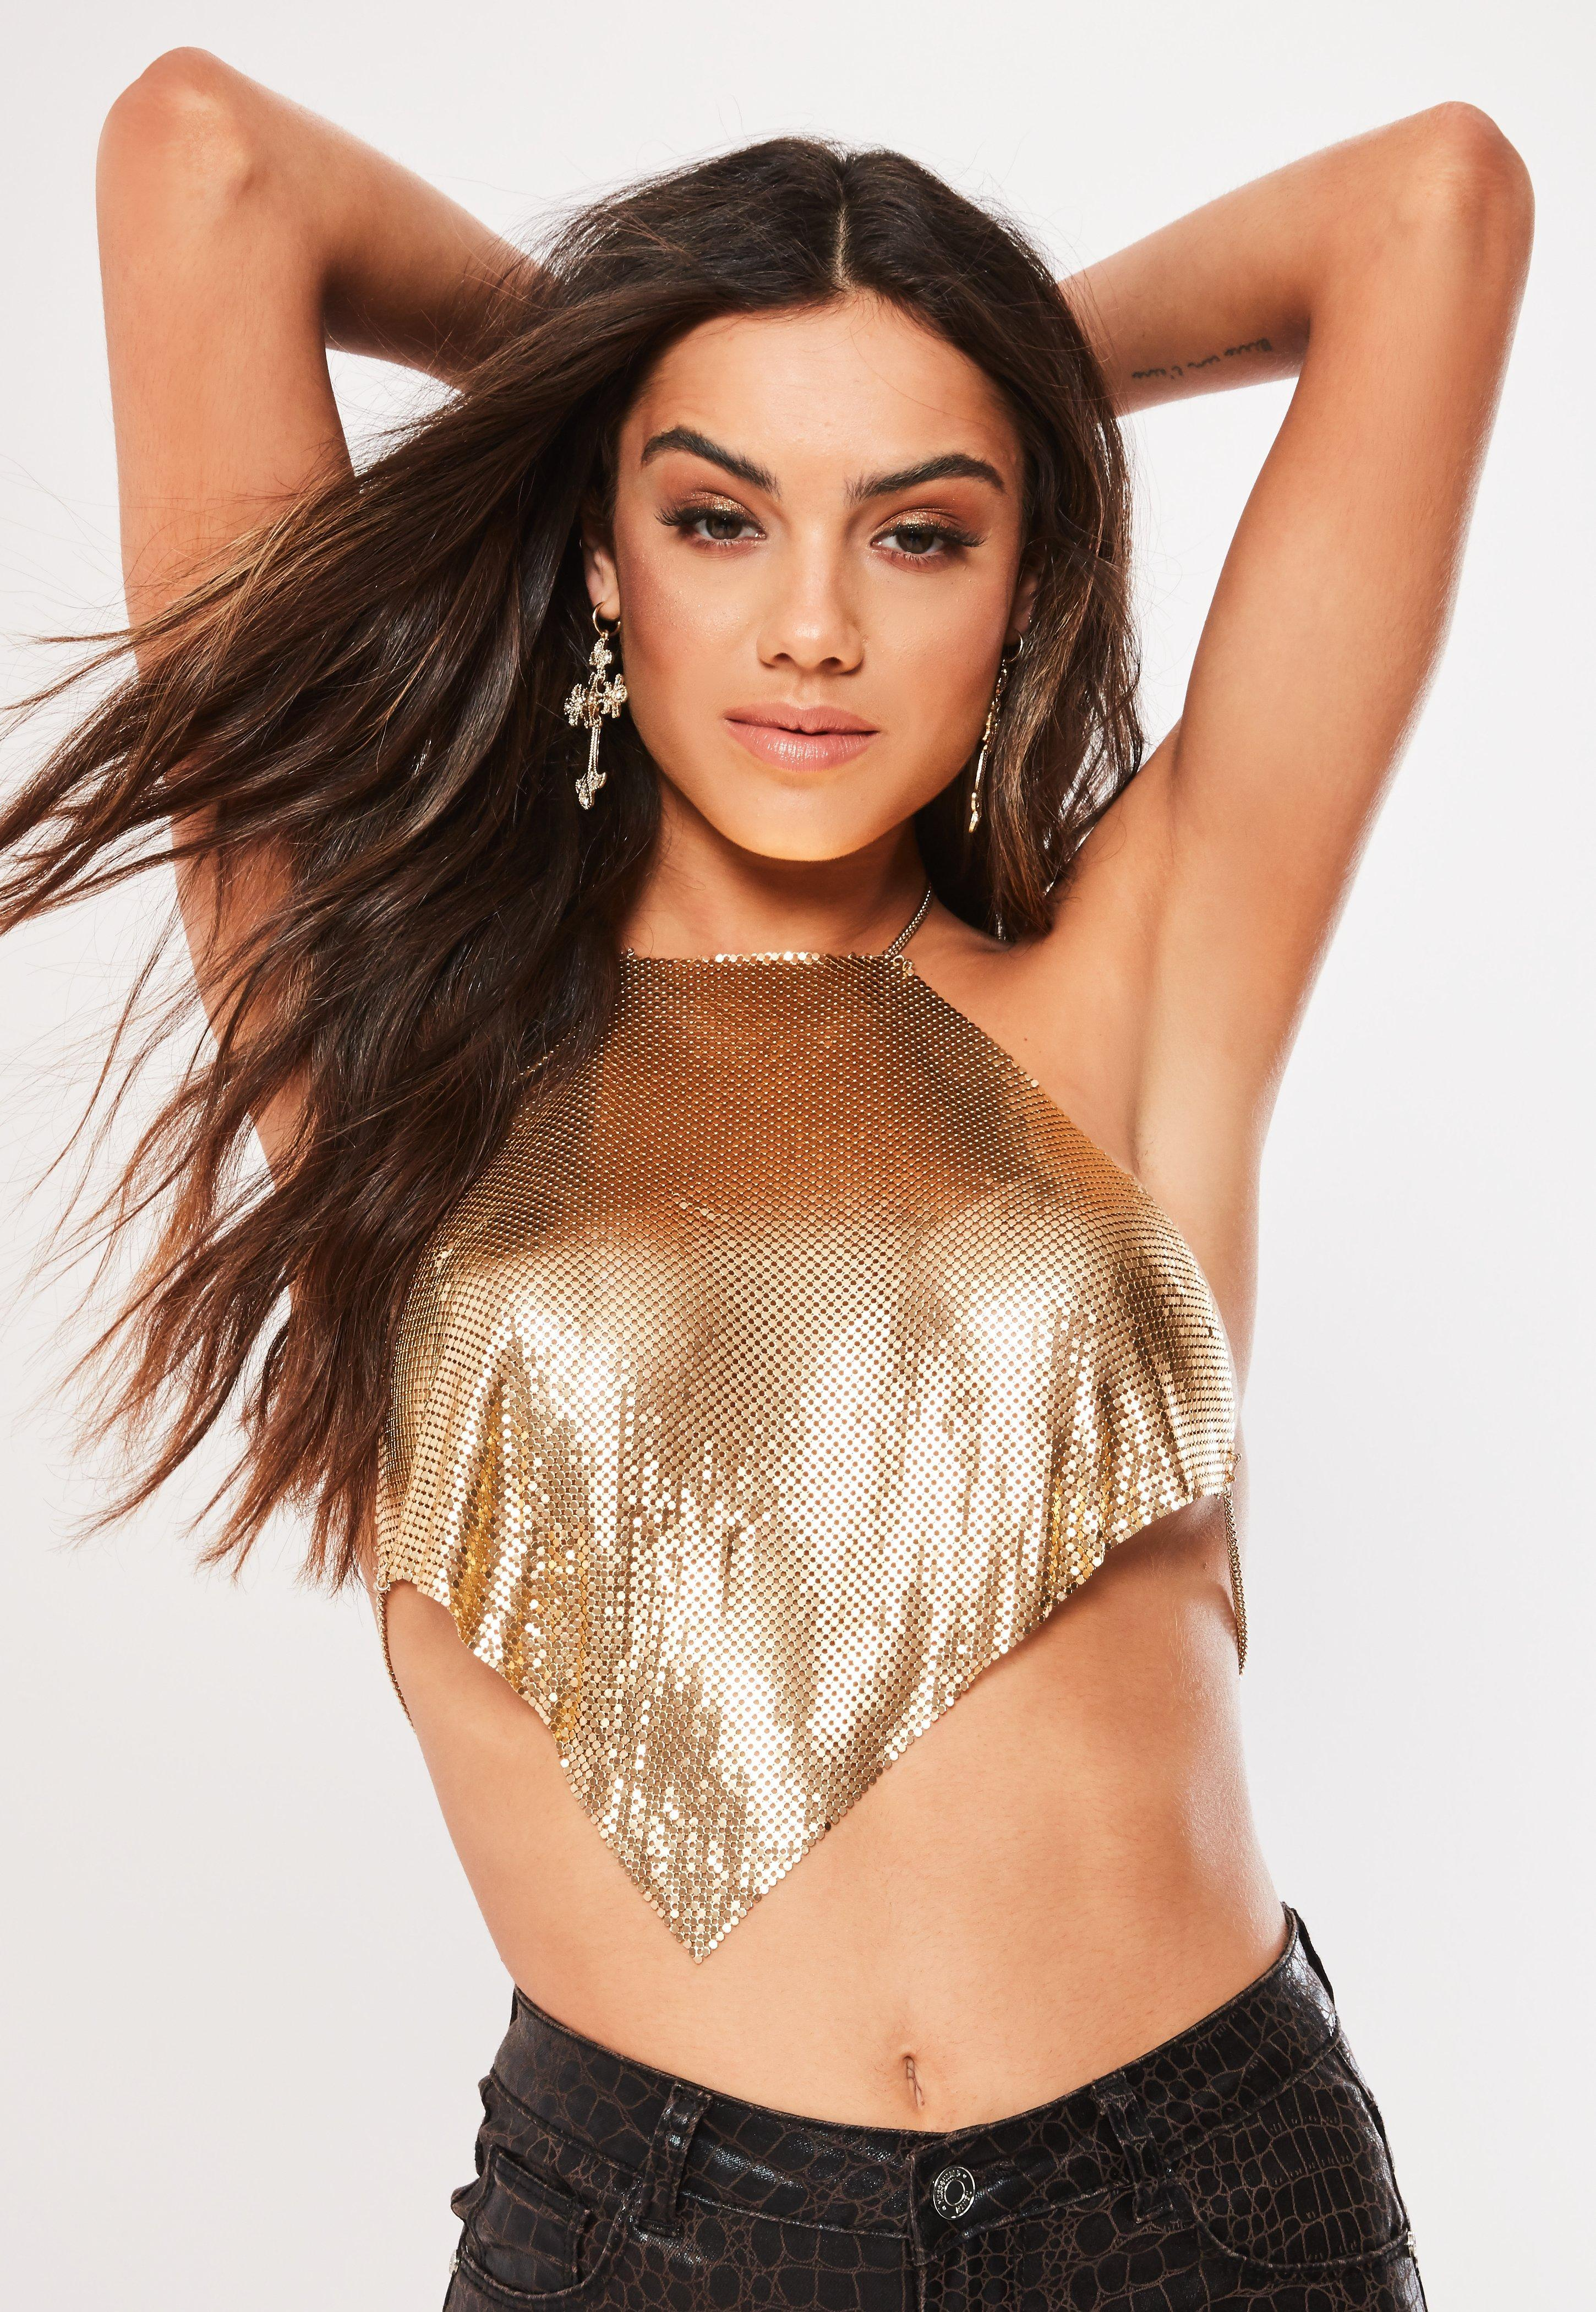 bd15b1eea93959 Missguided - Metallic Gold Look Chain Mail Top - Lyst. View fullscreen